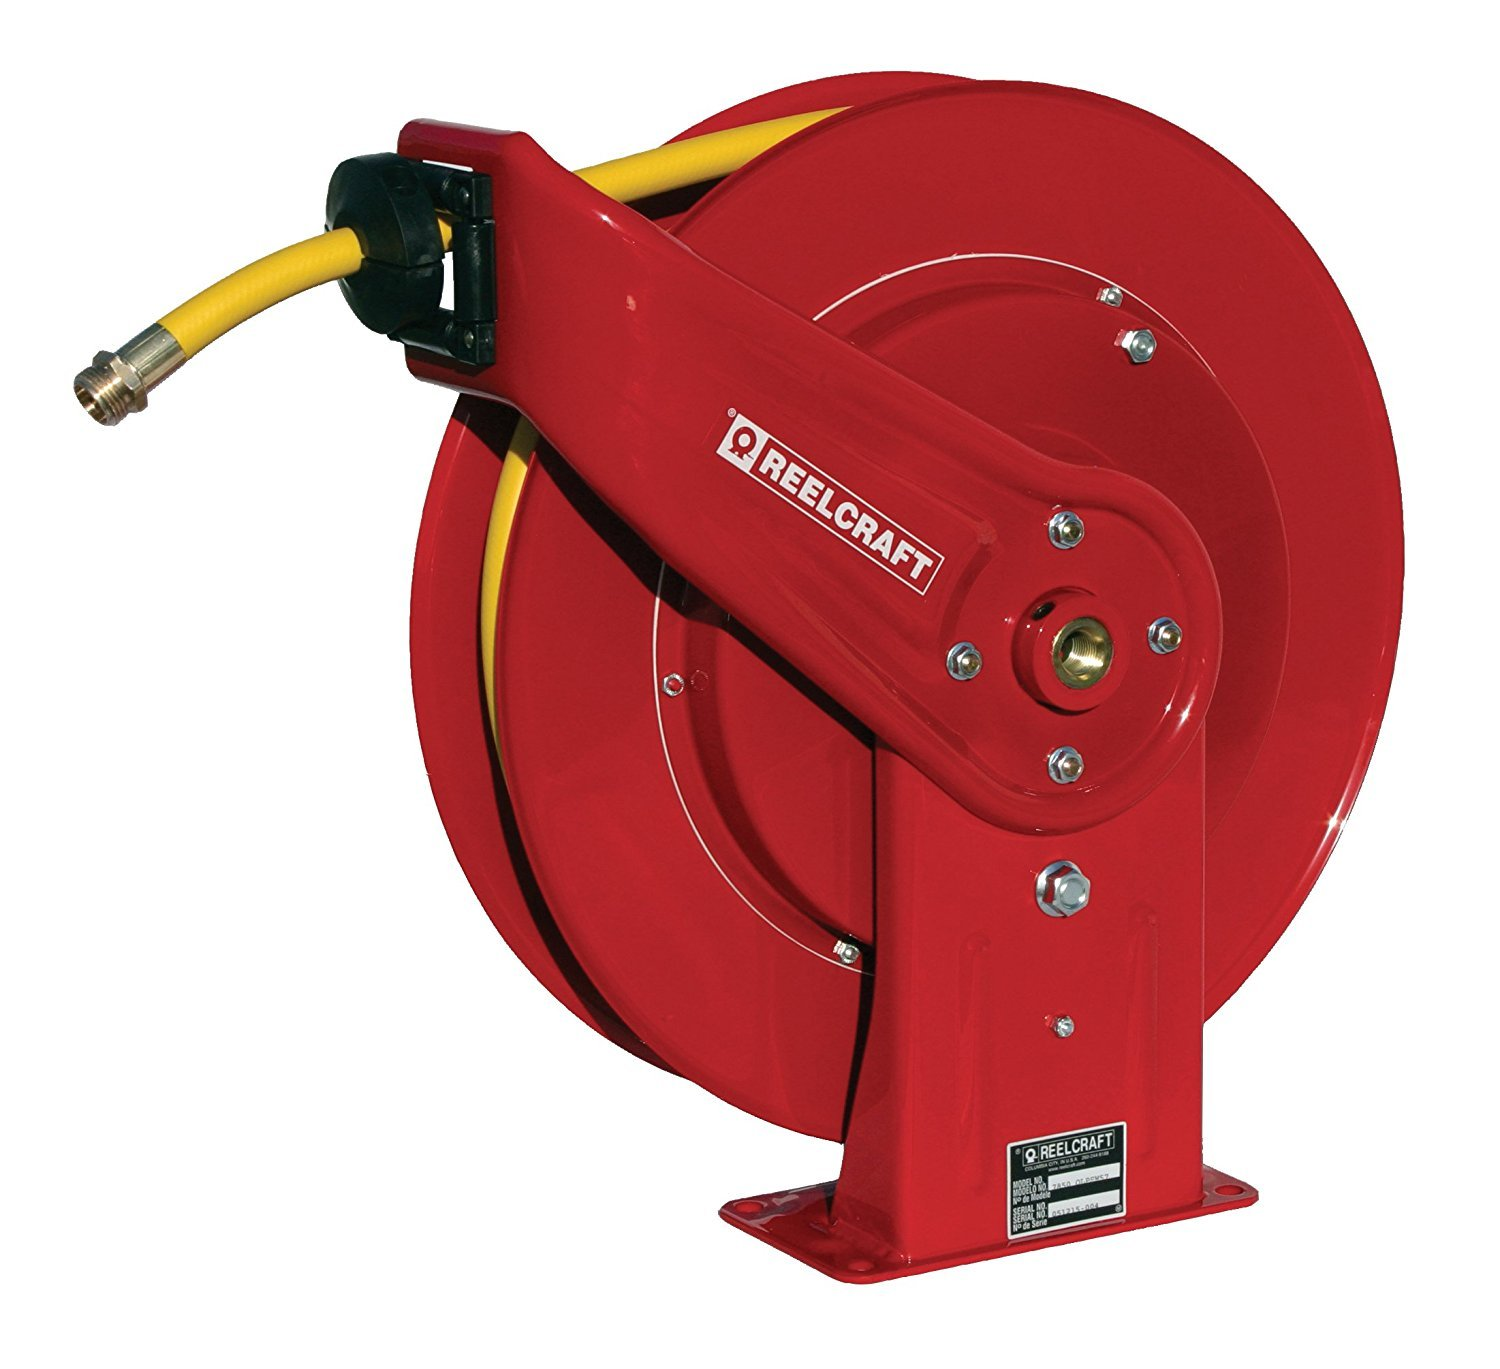 Reelcraft 7850 OLPSW57 1/2-Inch by 50-Feet Spring Driven Garden Hose Reel for Water by Reelcraft